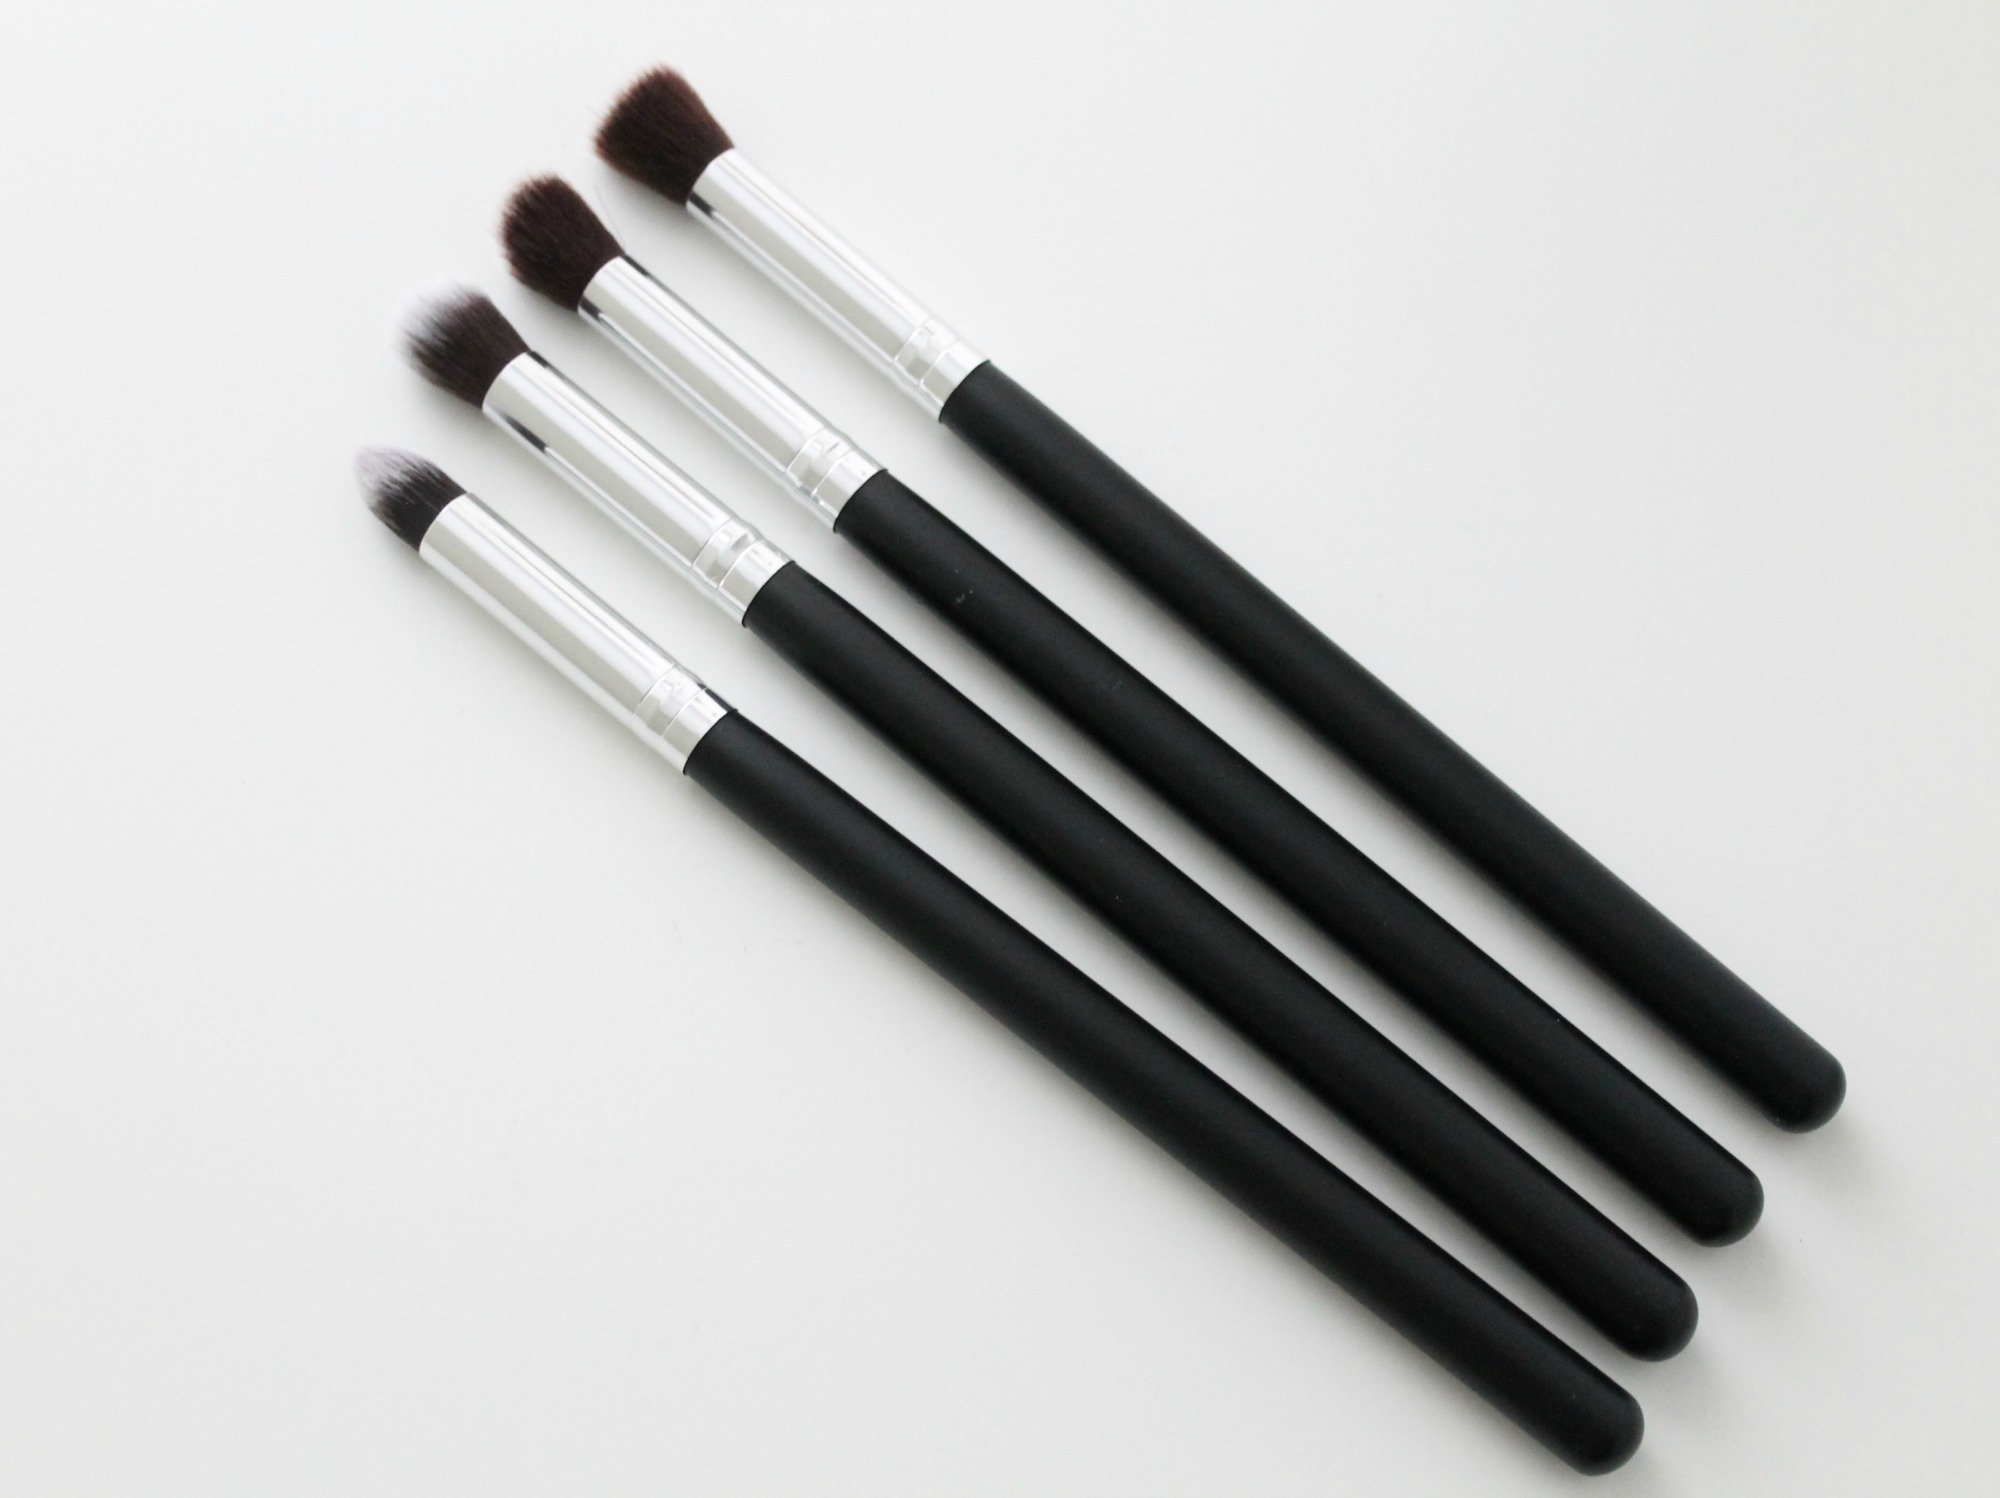 ebay_brushes